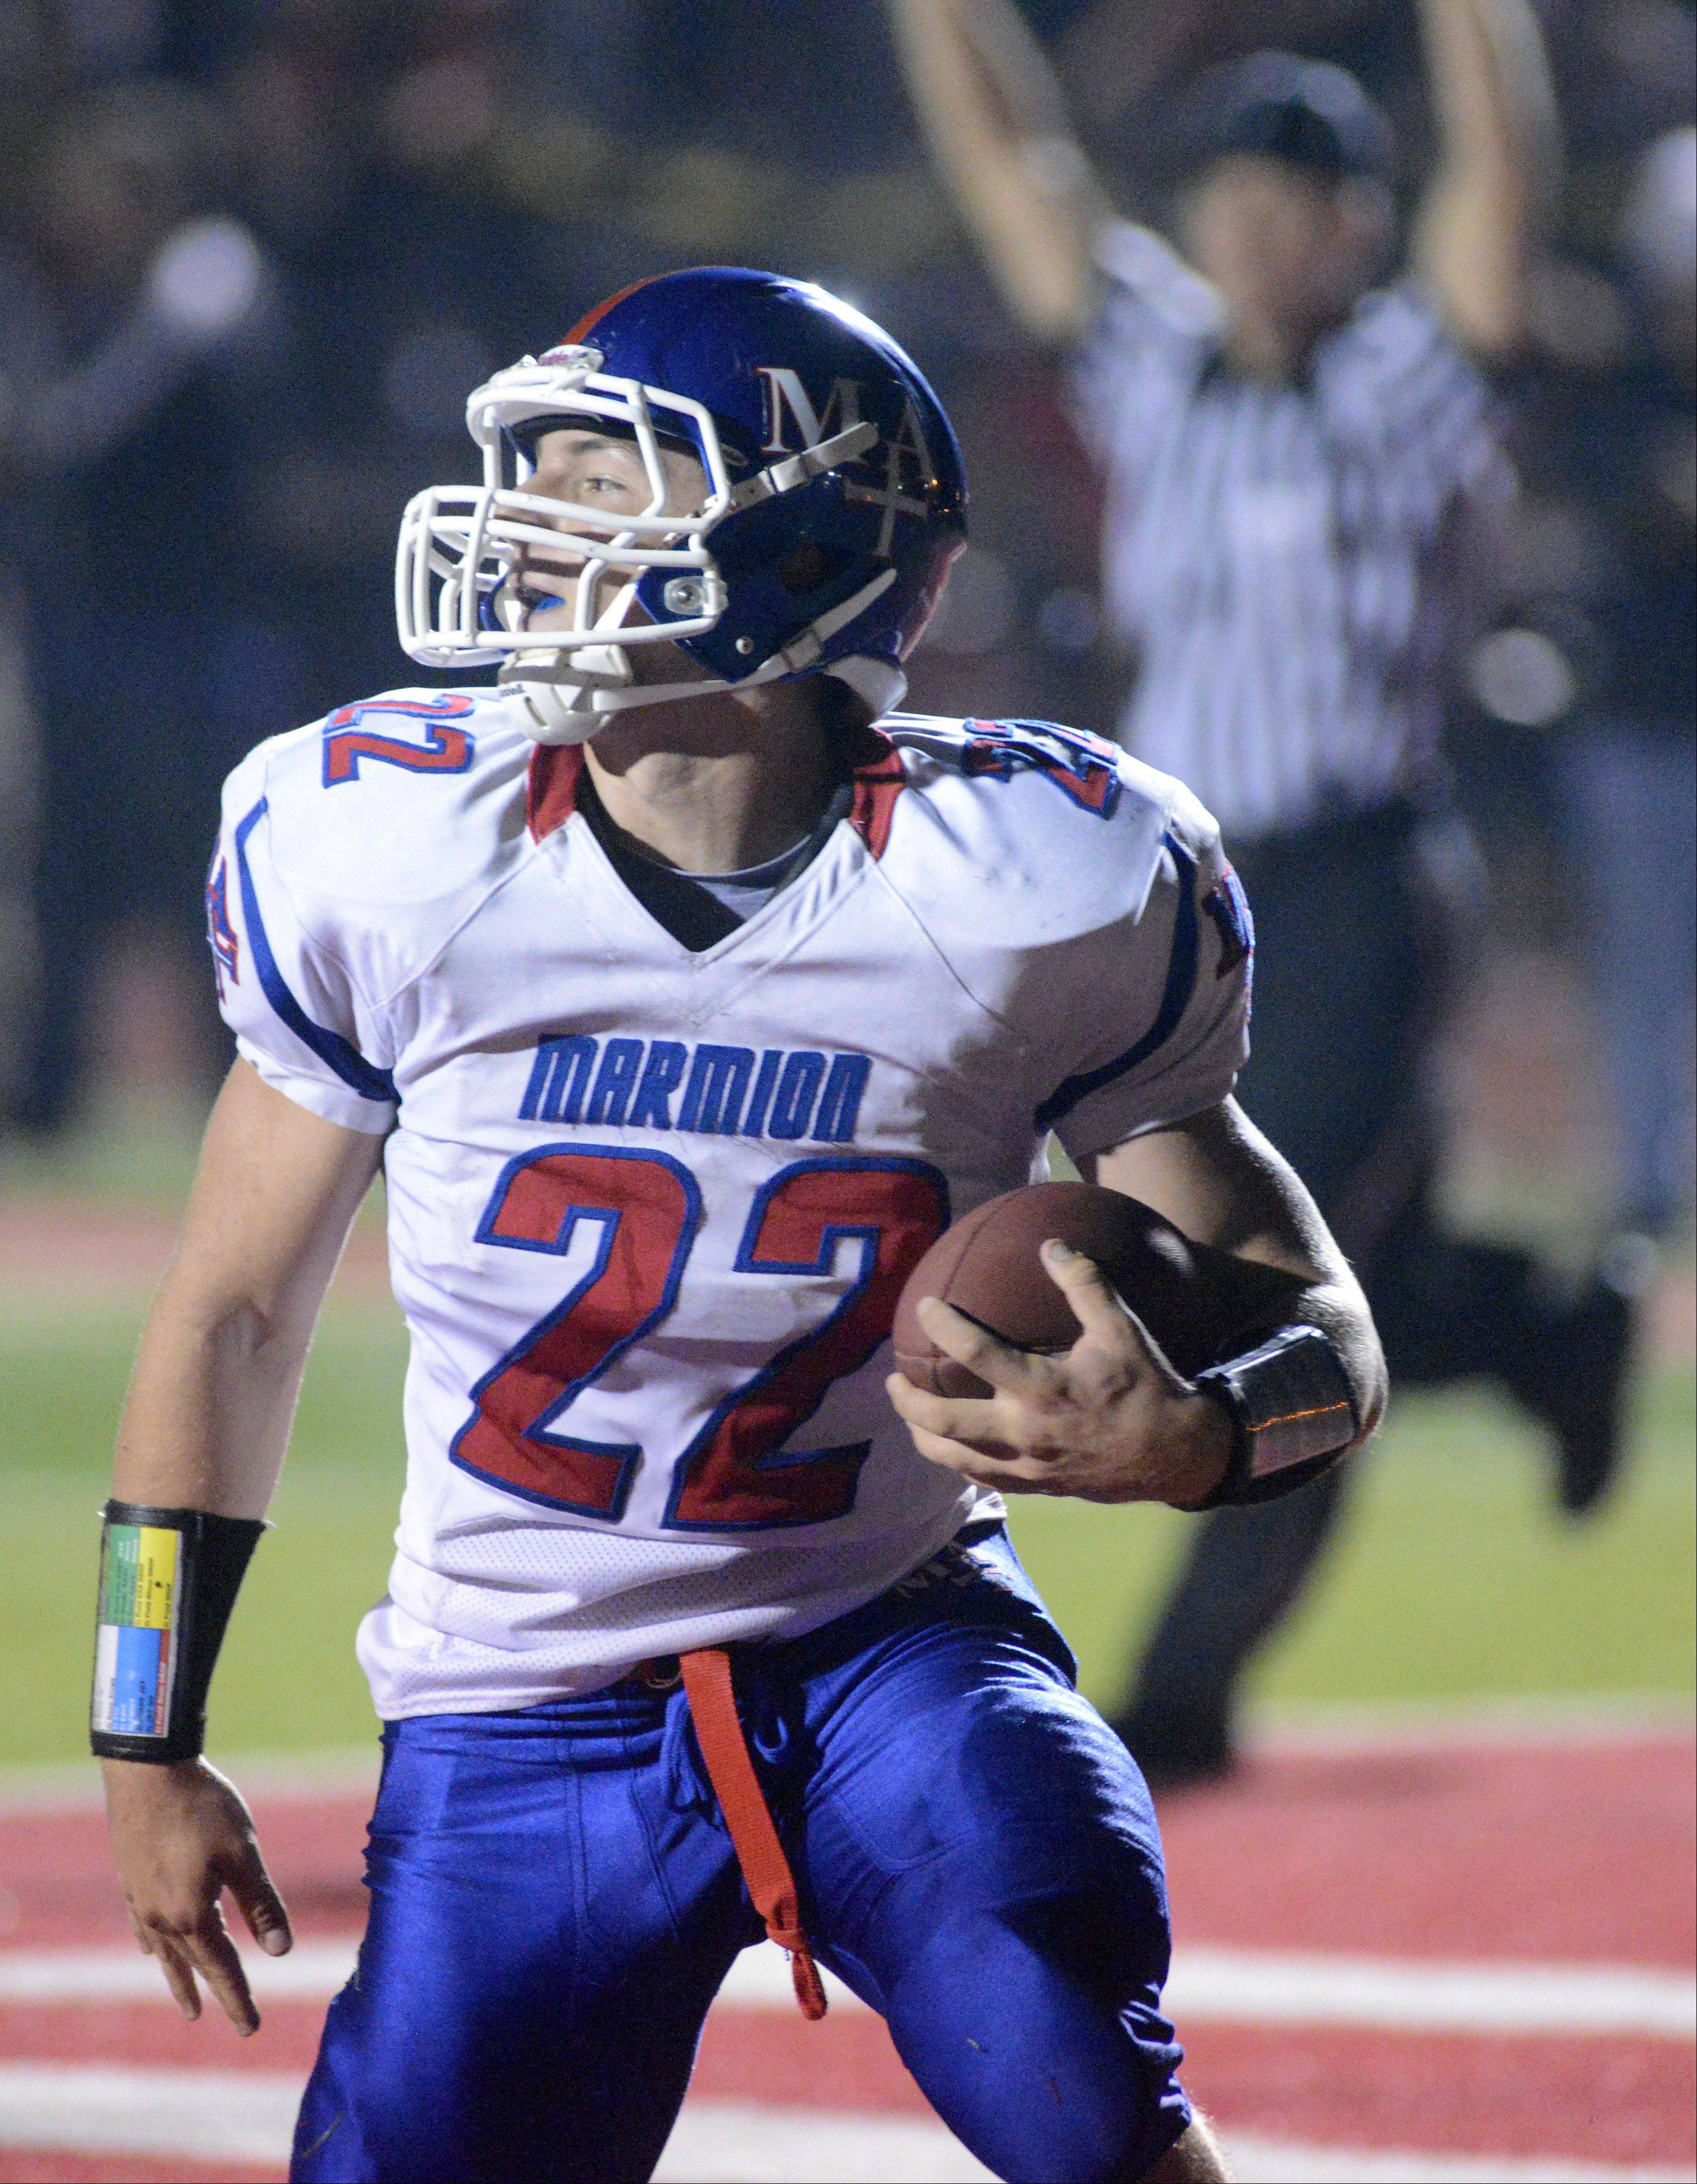 Marmion Academy's Jordan Glasgow scores a touchdown in the first quarter.